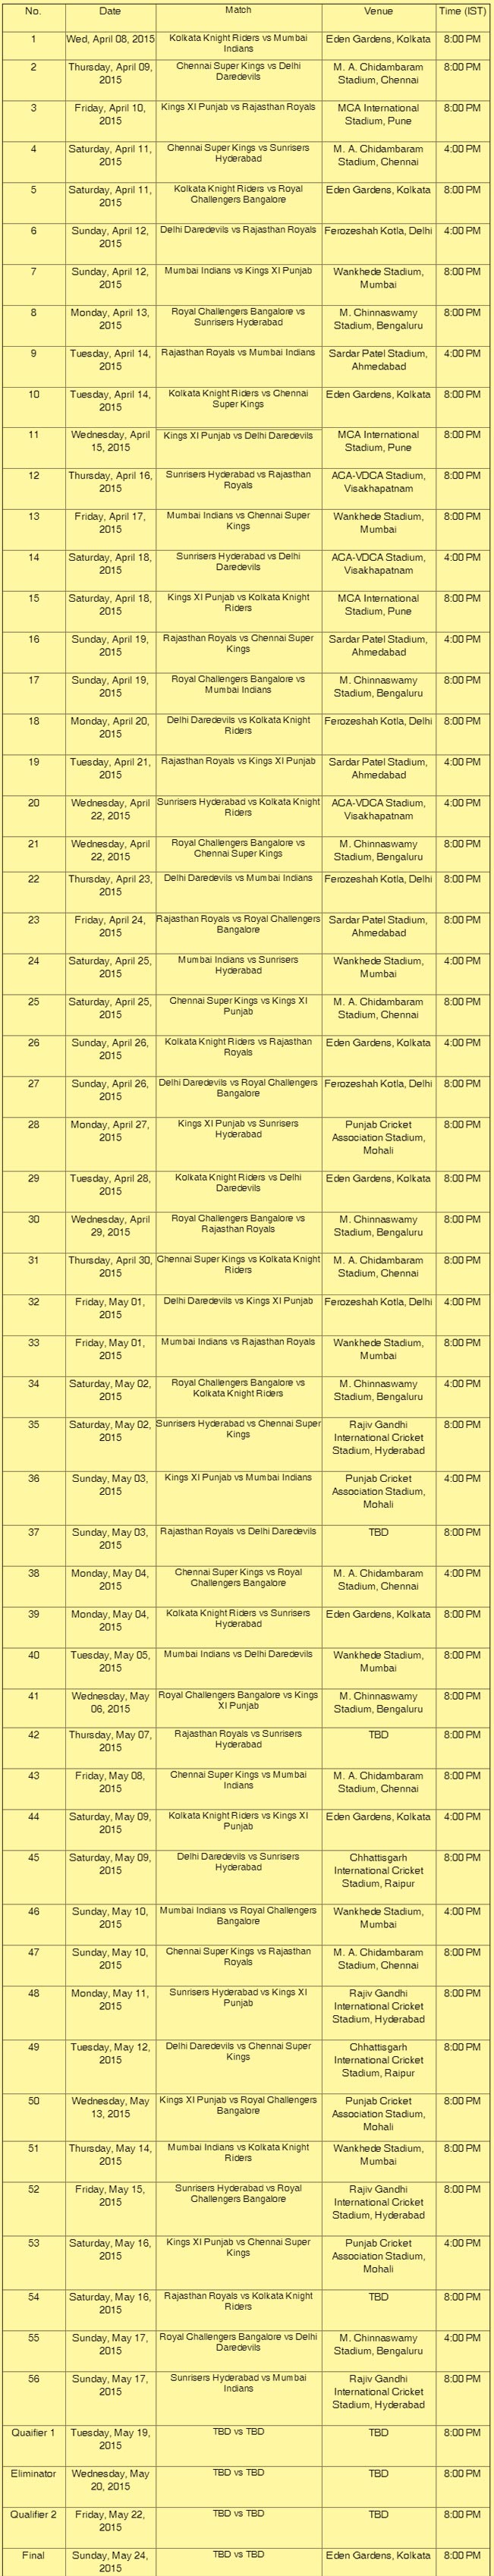 IPL-2015-Schedule-All-Match-Fixtures-and-ComTime-Table-of-IPL-8